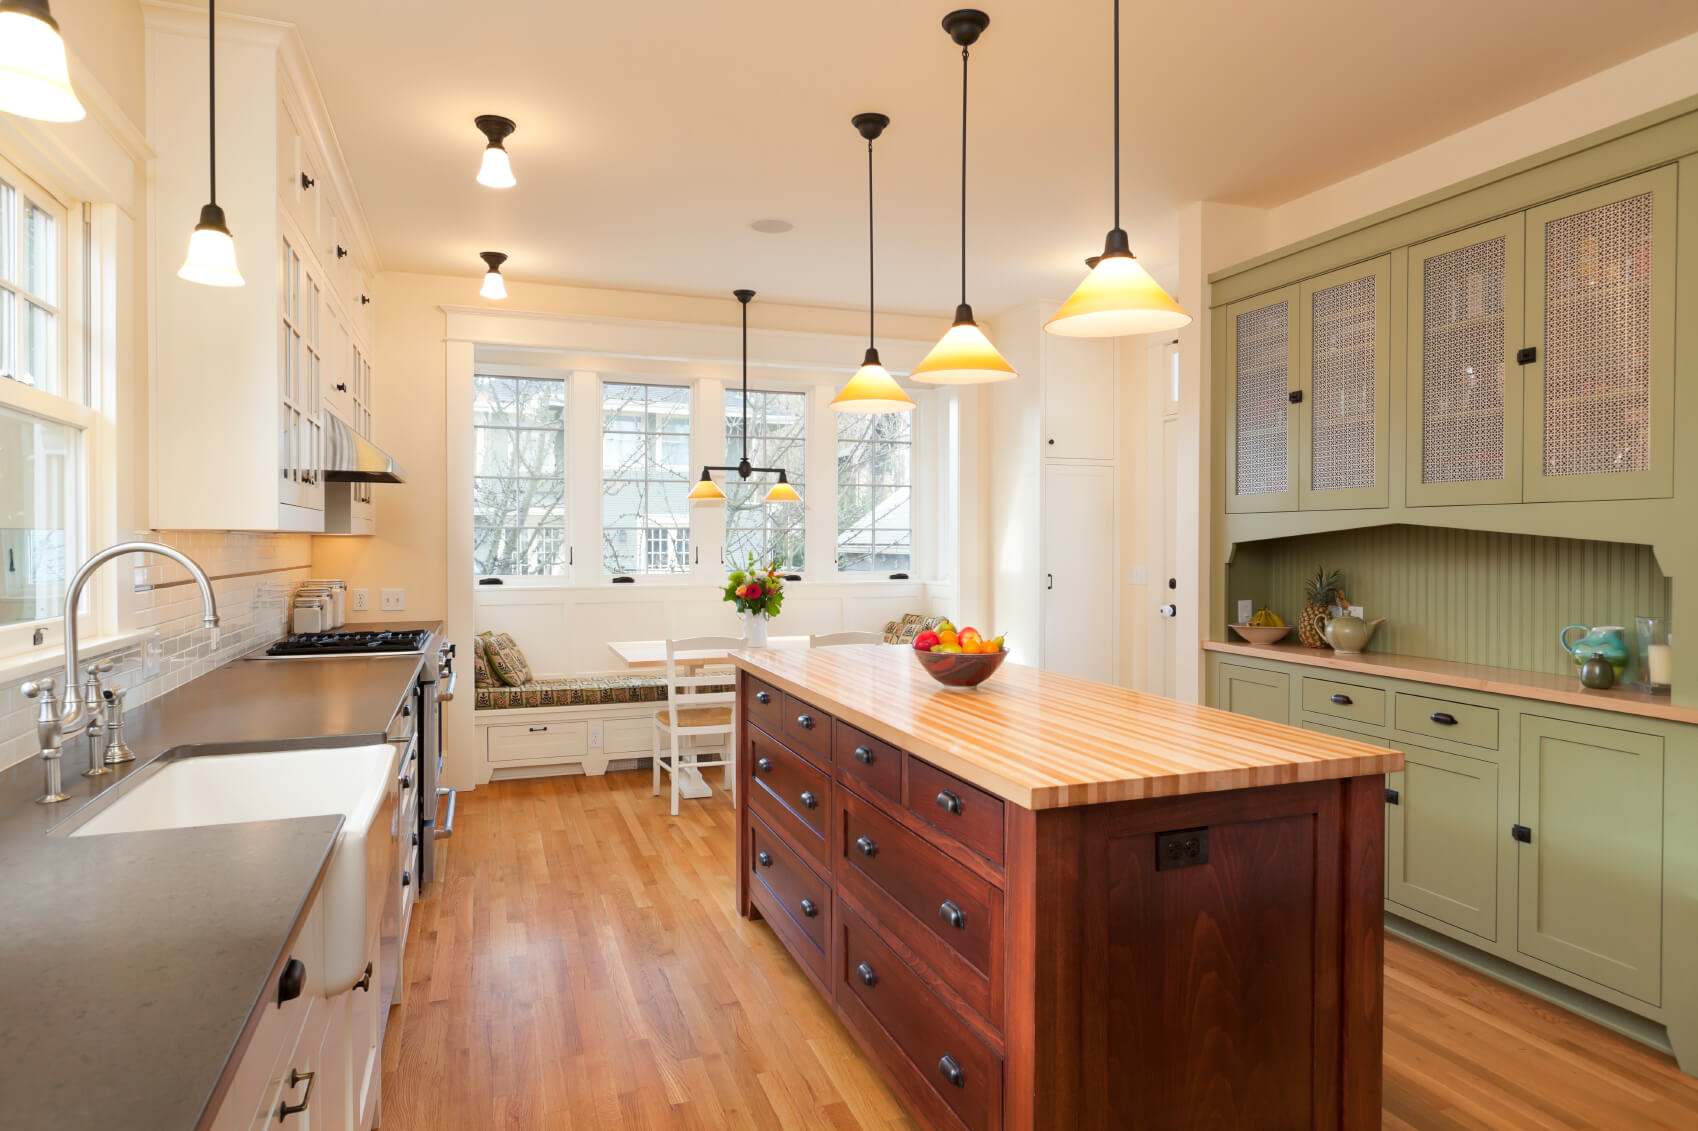 i include this kitchen in our galley kitchen photo gallery because the end is a long - Galley Kitchen Design Ideas